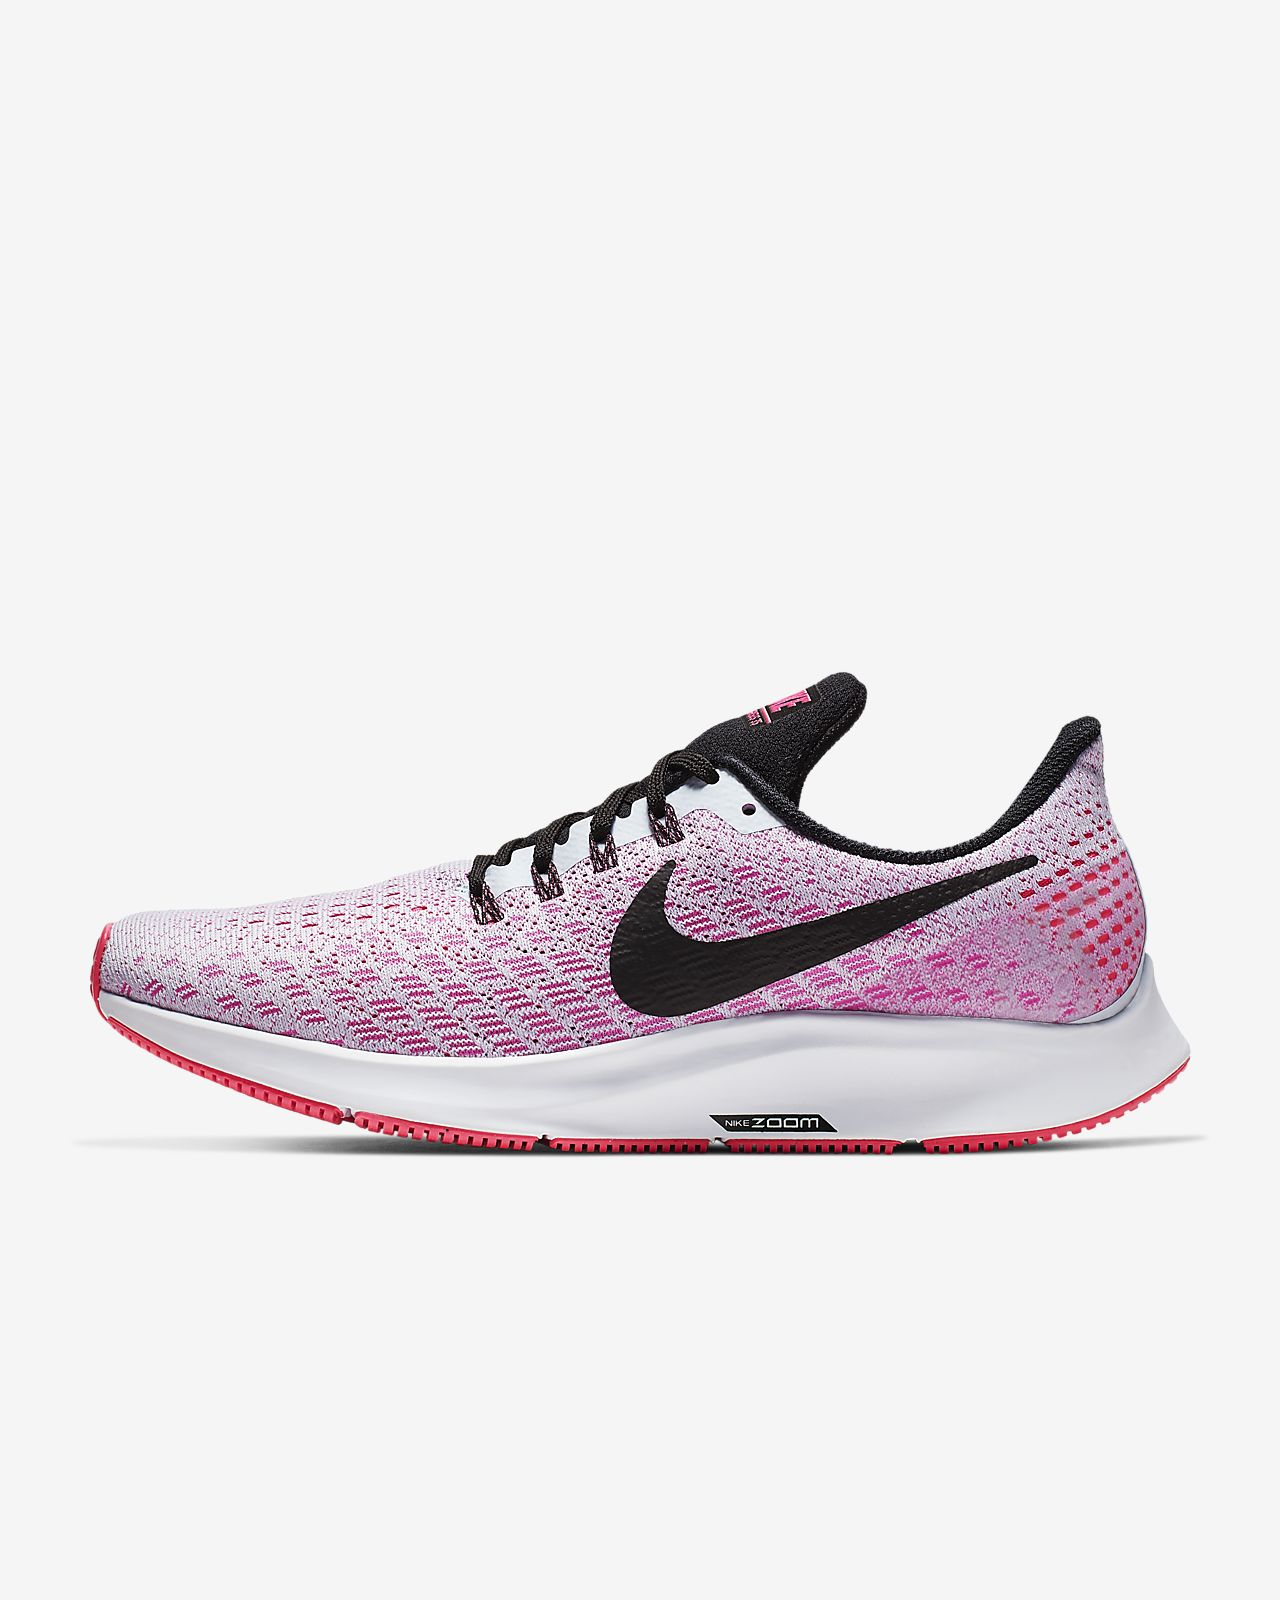 b56fb31f8473e Nike Air Zoom Pegasus 35 Women s Running Shoe. Nike.com